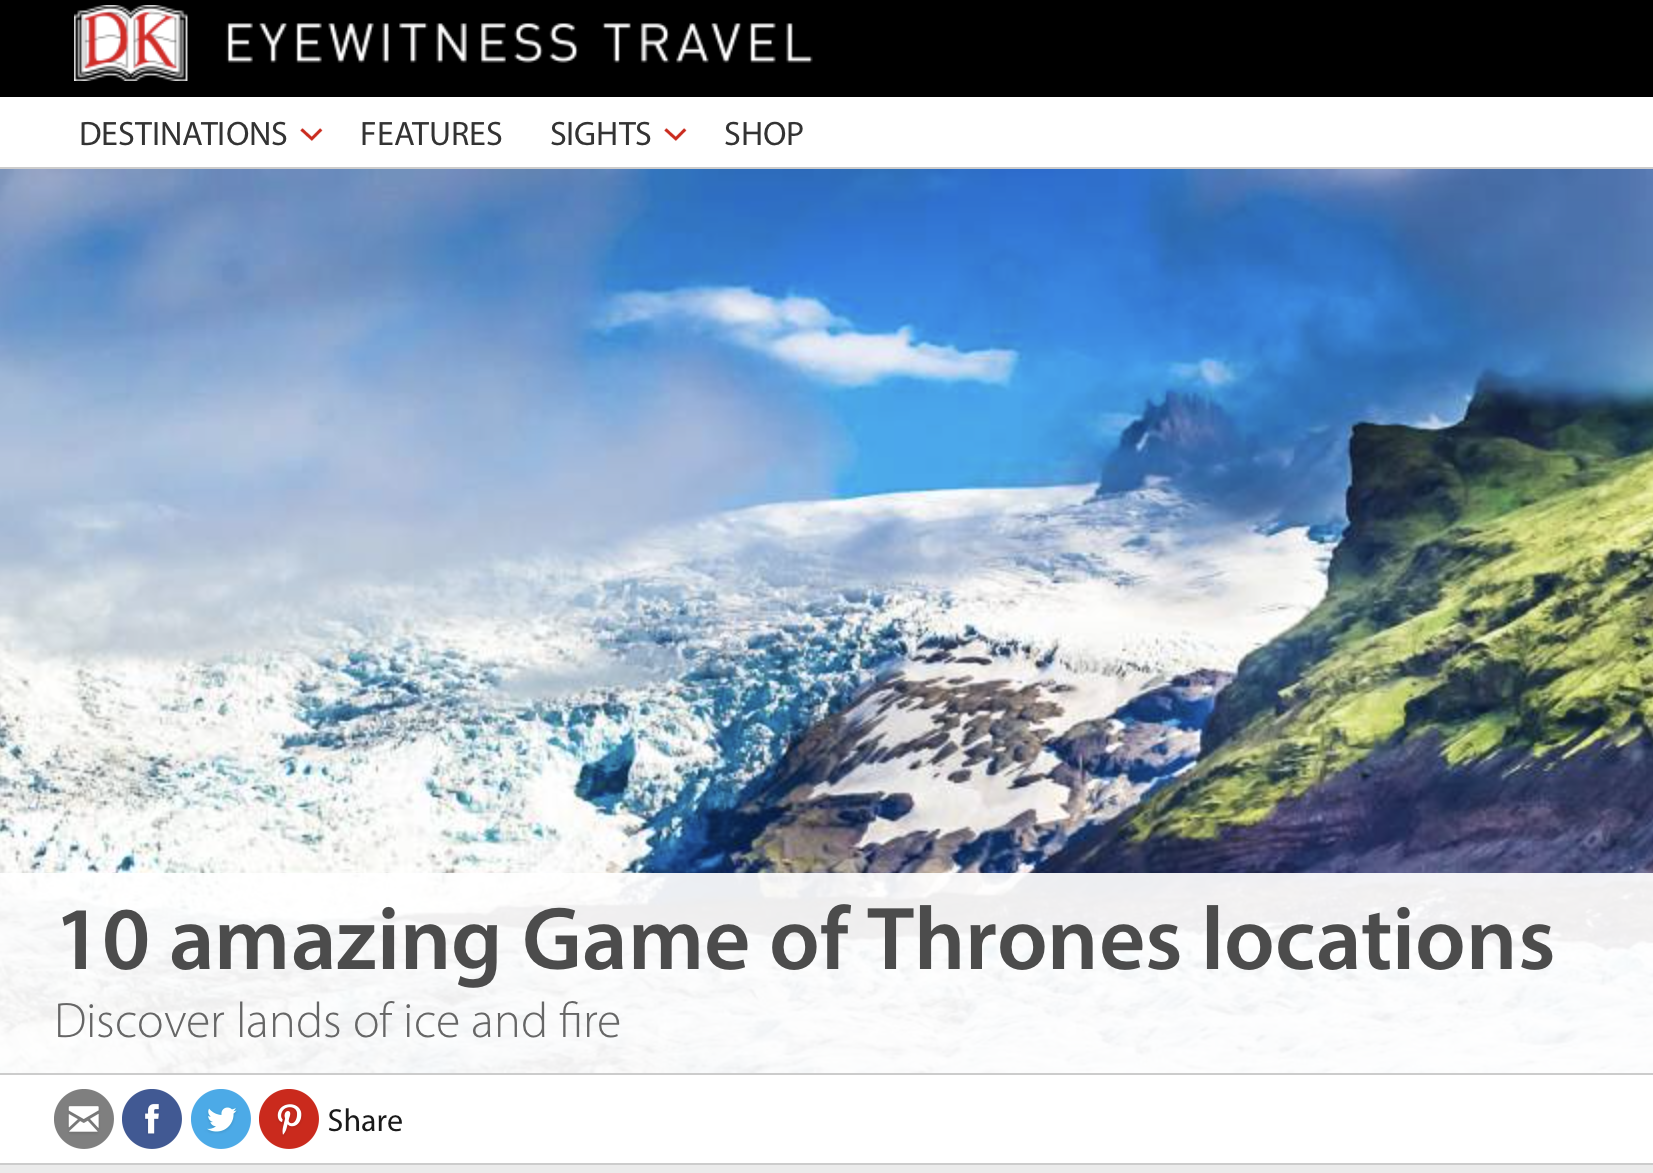 10 Game of Thrones locations